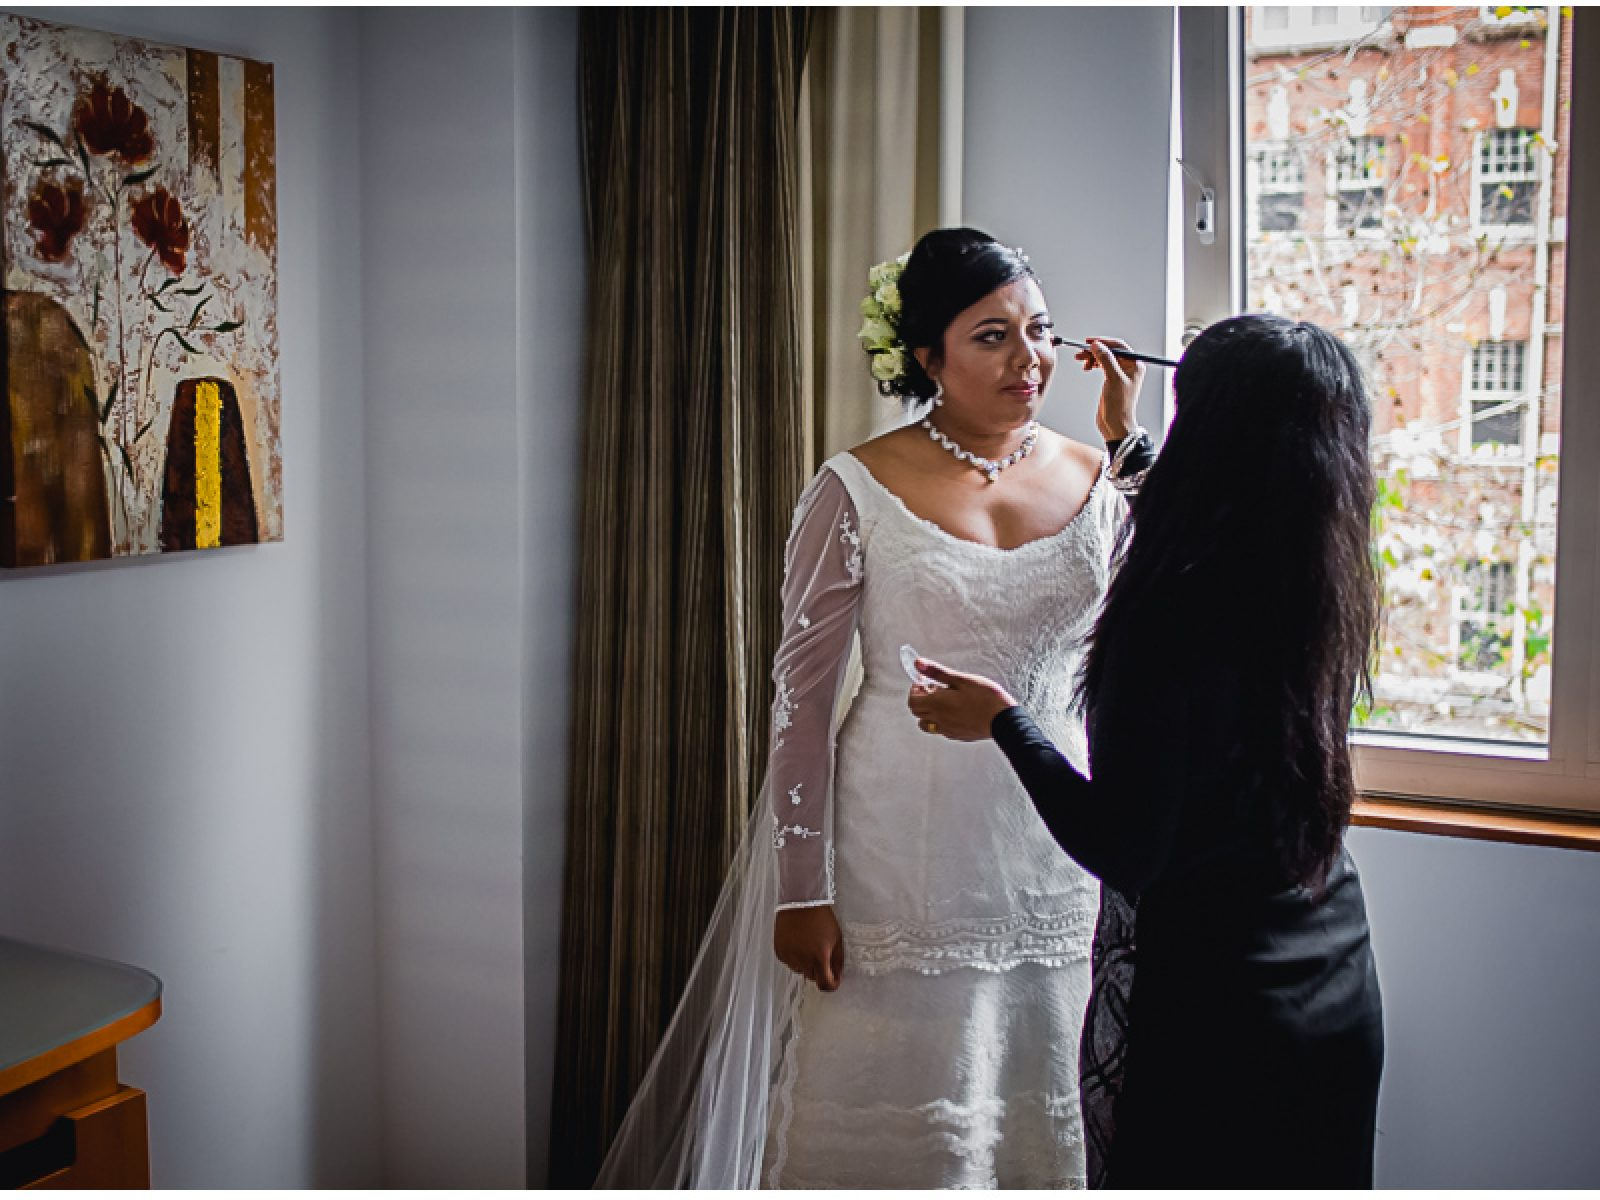 111 1600x1200 - Darshani and Anthony - wedding photographer in London